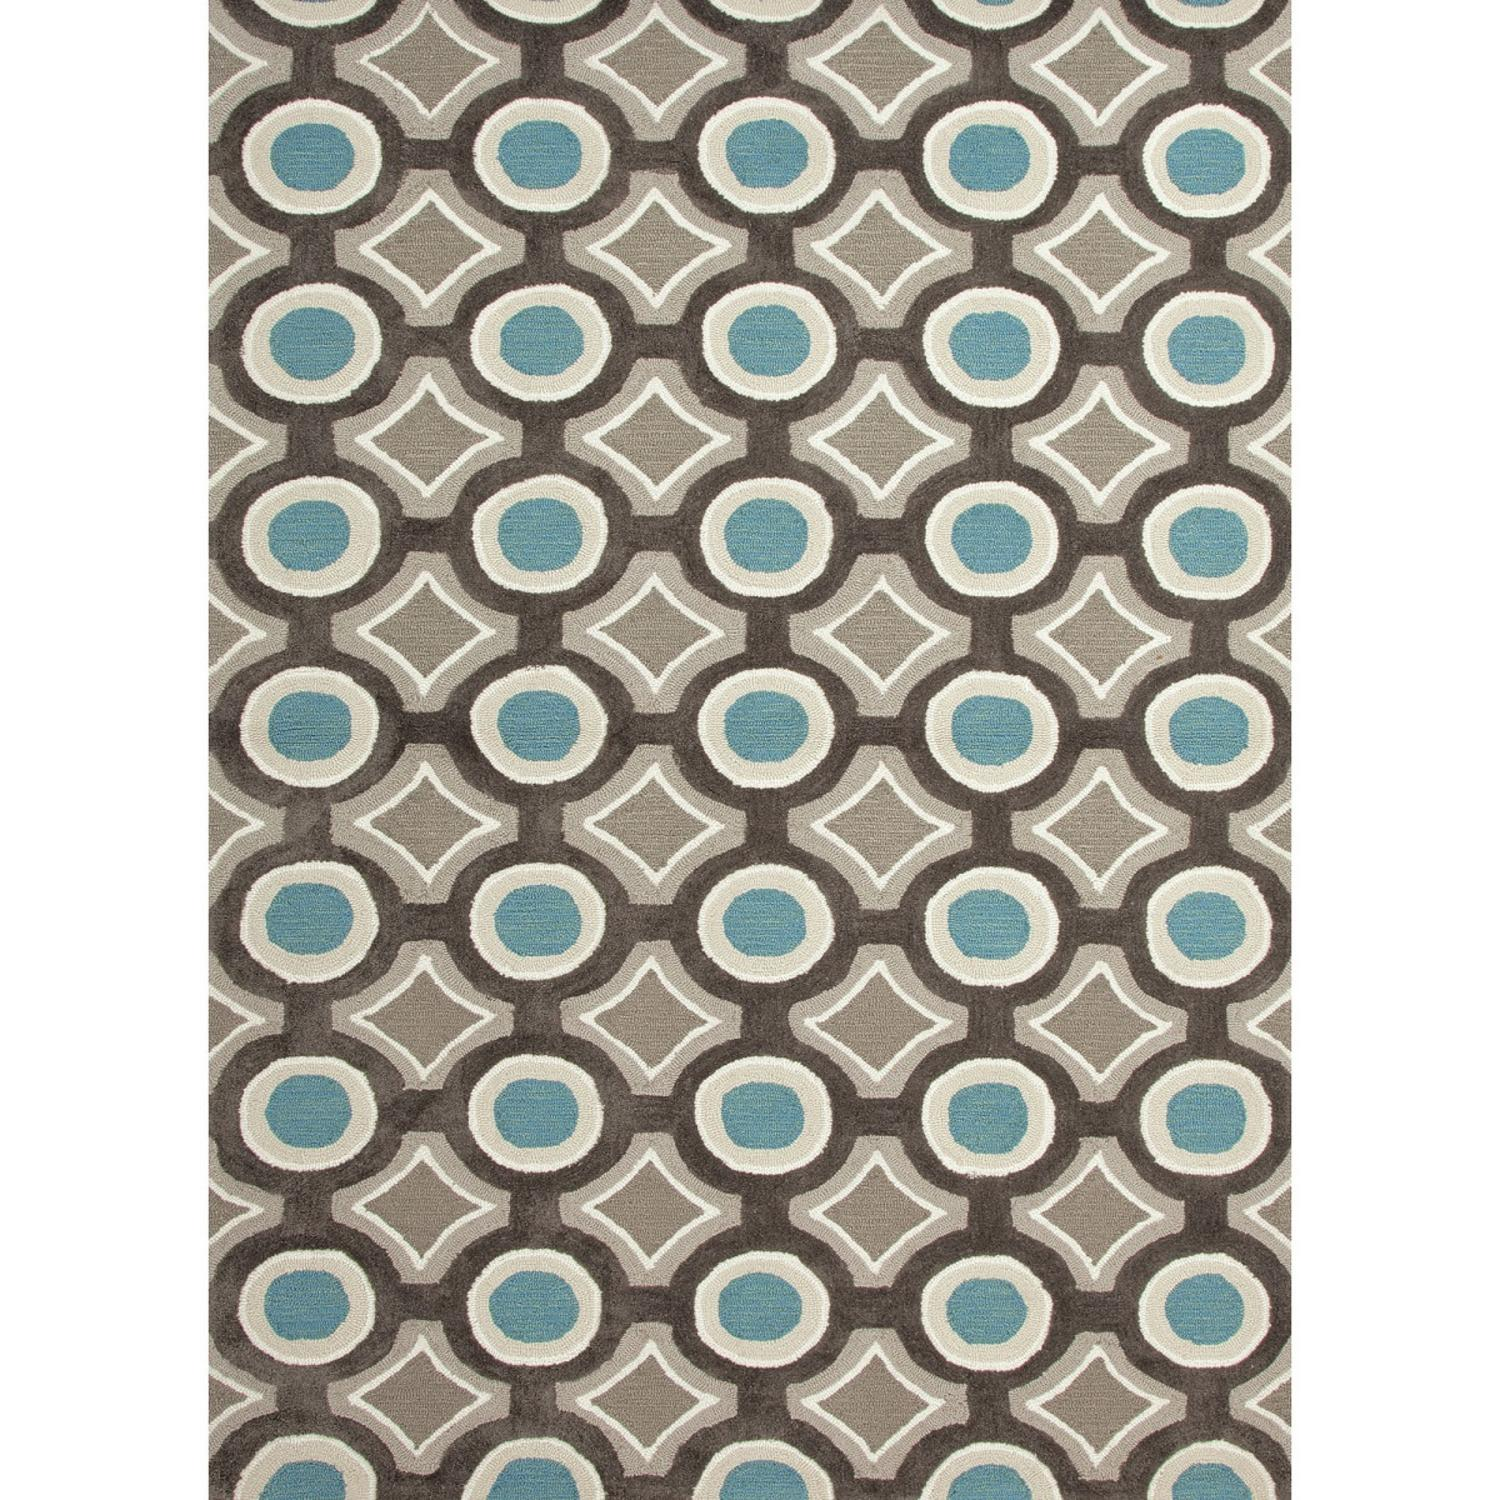 2' x 3' Blue Green, Taupe and Chocolate Brown Modern Mosaic Hand Tufted Area Throw Rug